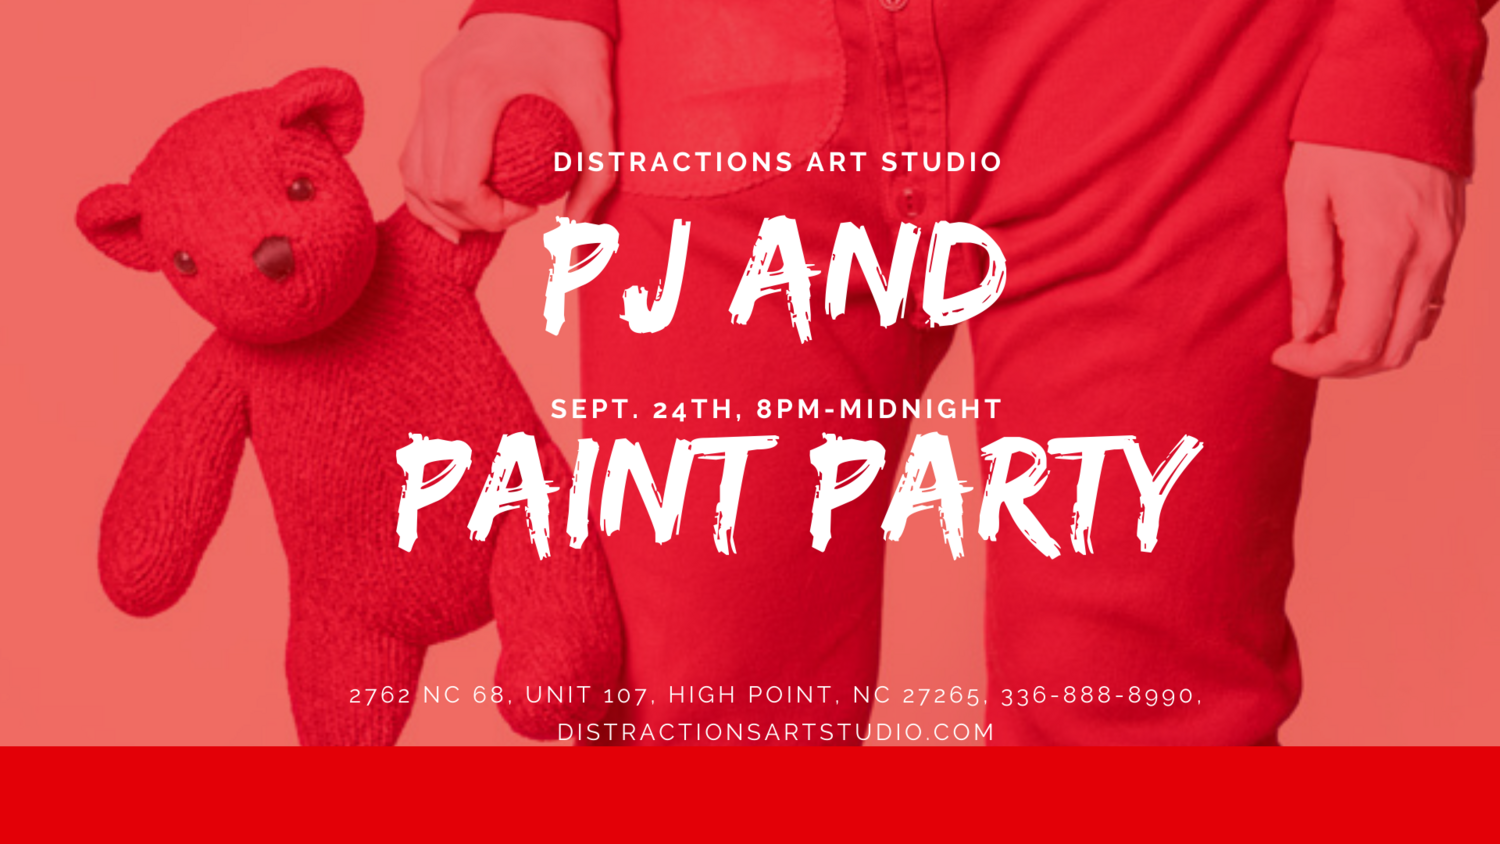 PJ and Paint Party